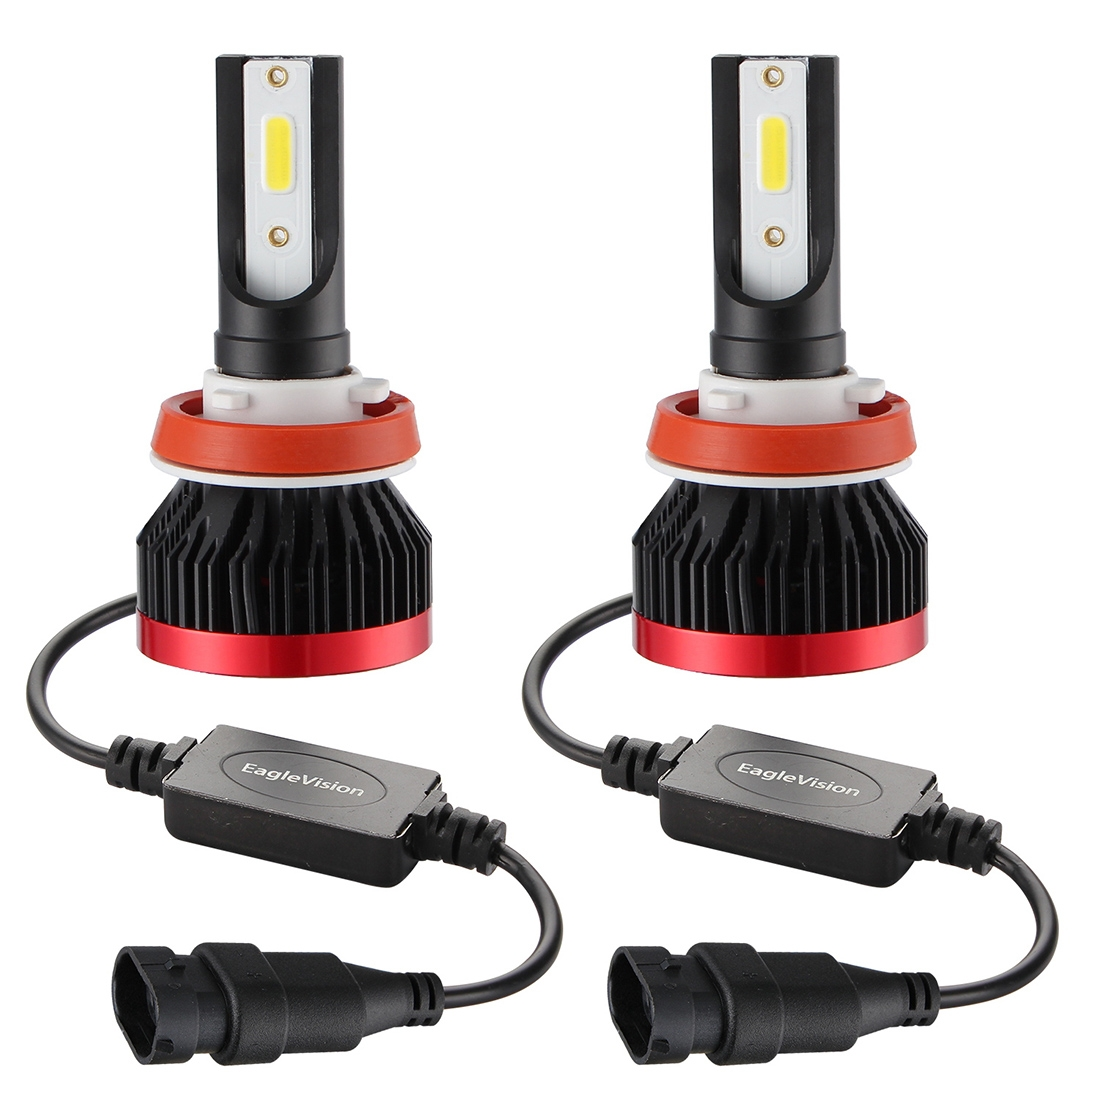 2 PCS EV7 H8 / H9 / H11 DC 9-32V 36W 3000LM 6000K IP67 LED Car Headlight Lamps, with Mini LED Driver and Cable (White Light)